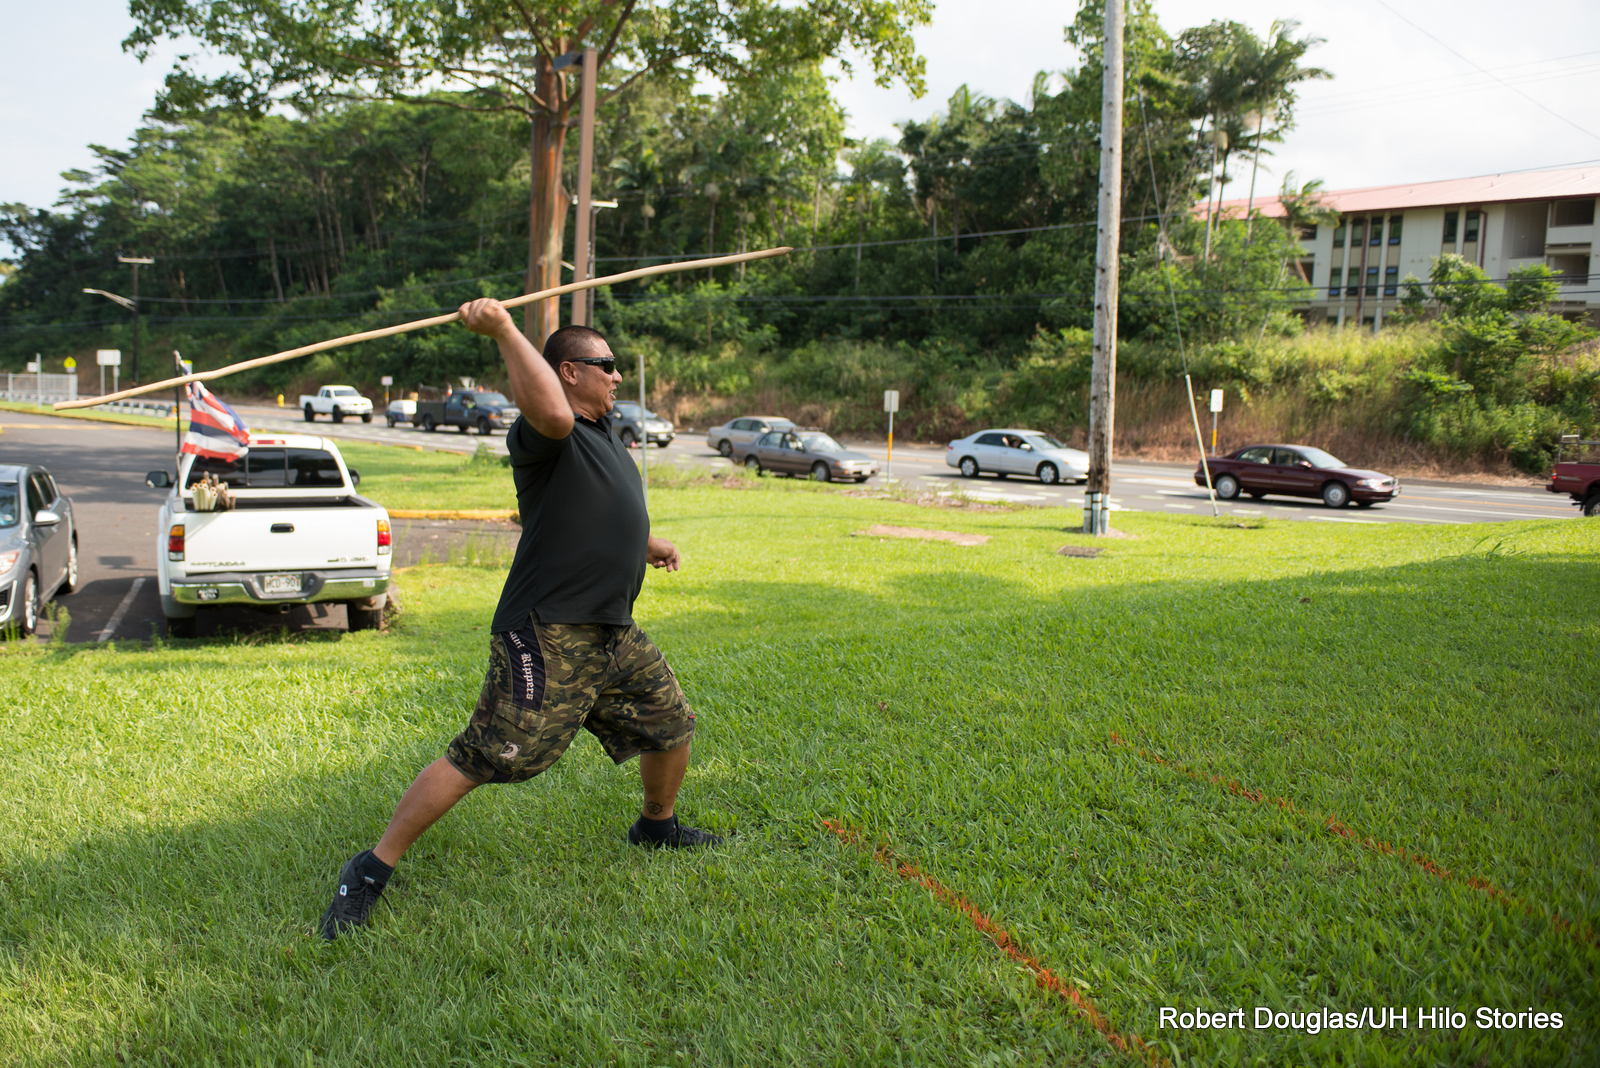 Spear throwing.